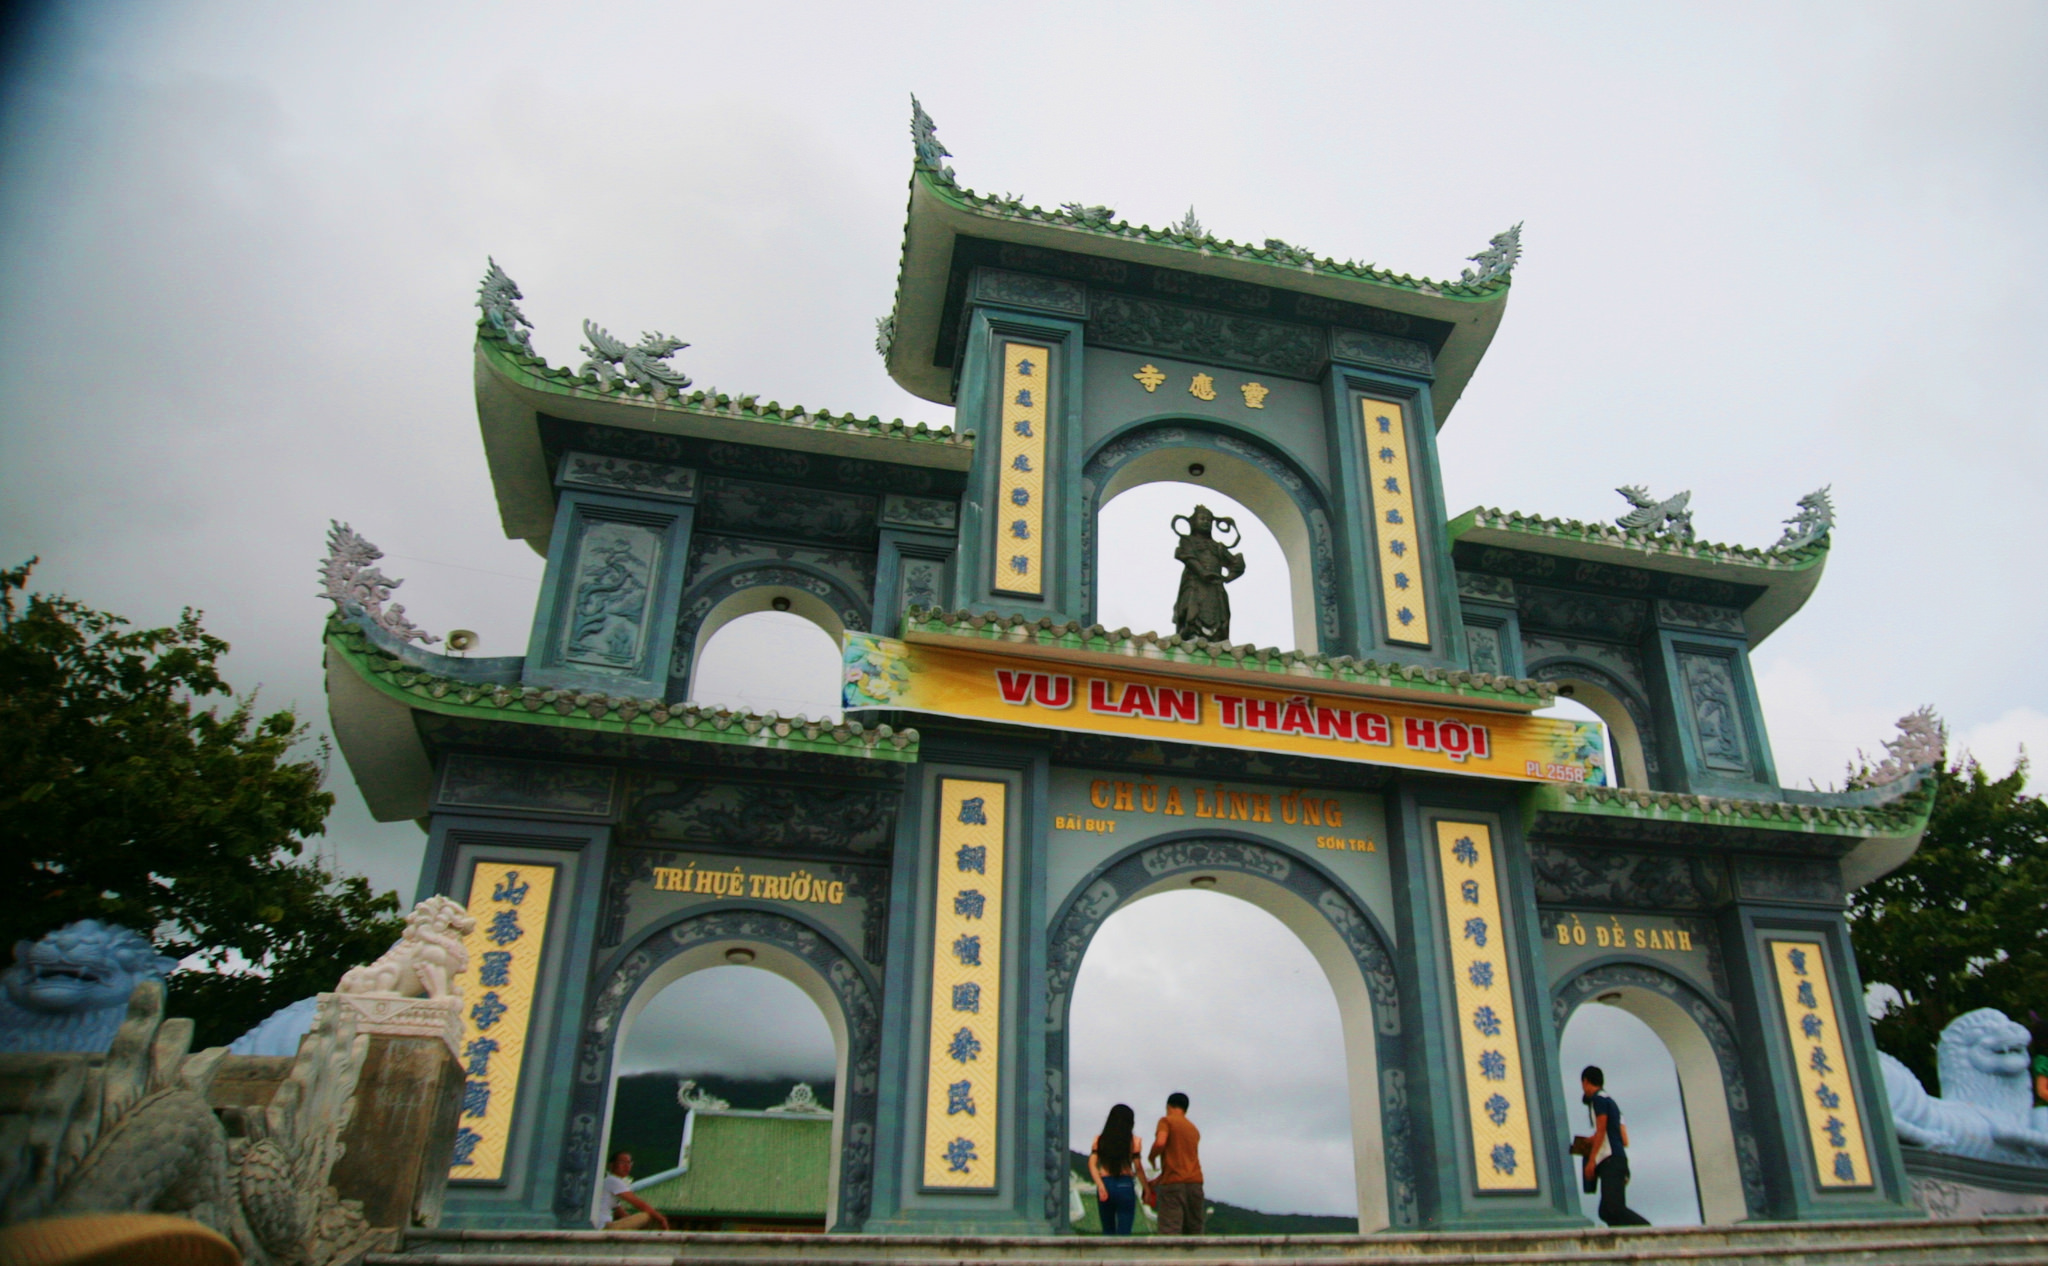 impressive gateways at Linh Ung Pagoda, Vietnam